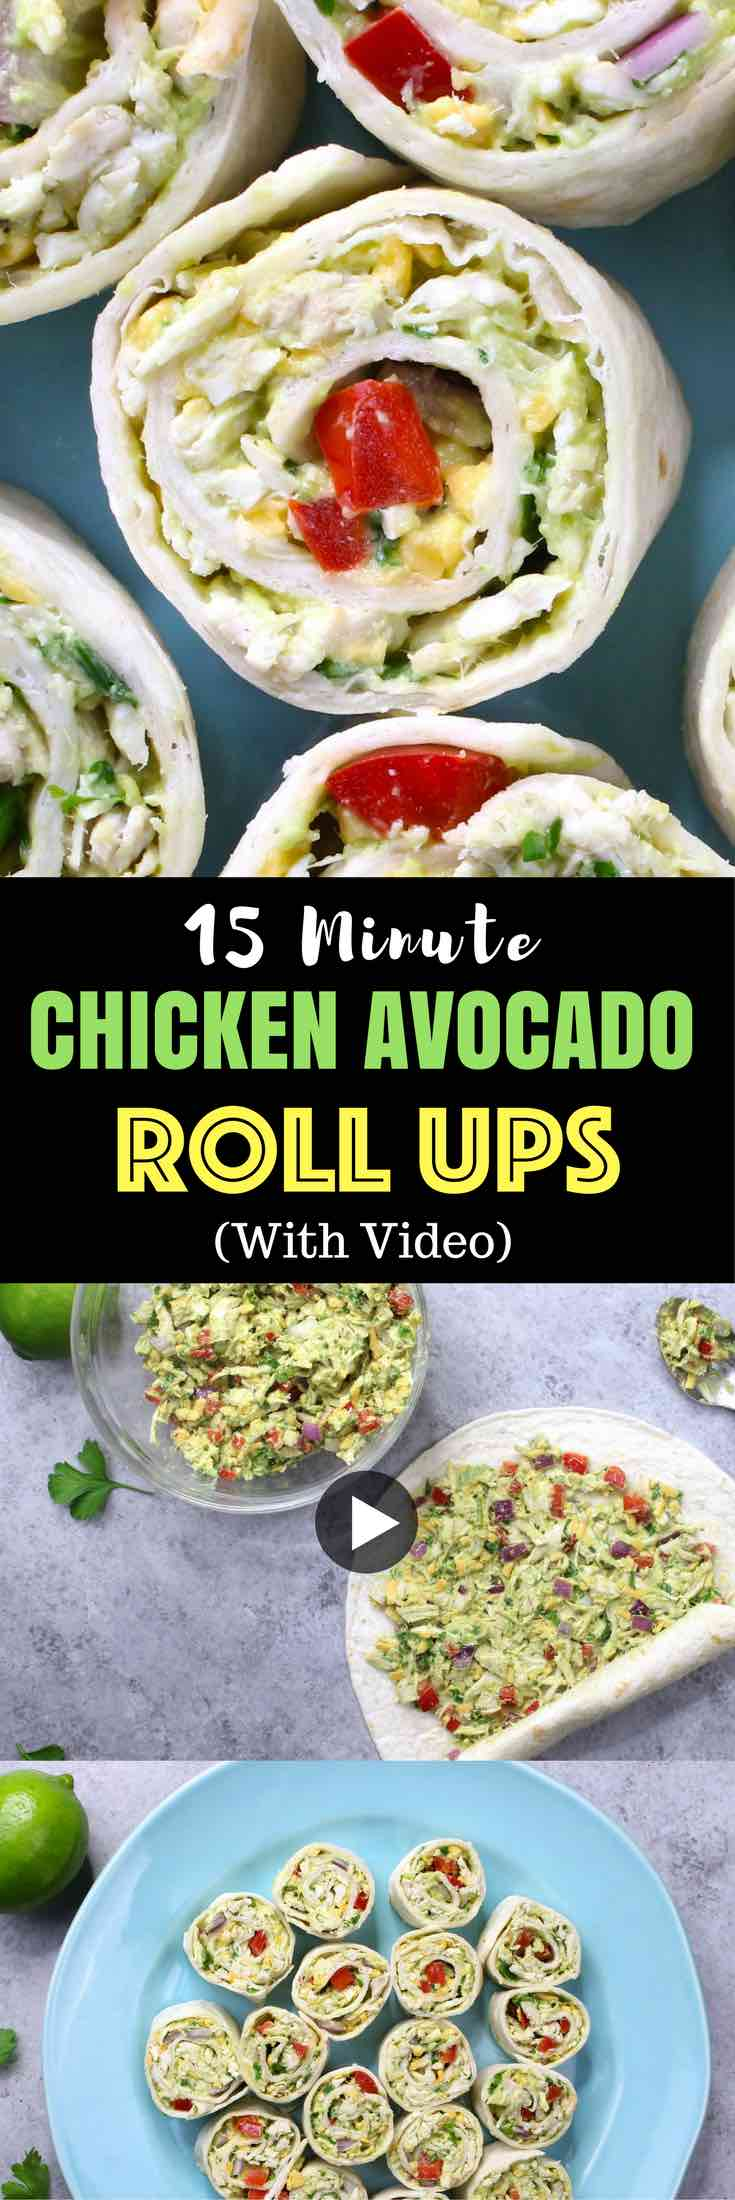 Super Easy Chicken Avocado Salad Roll-Ups or Pinwheels - Nutritious, healthy, make ahead and easy delicious recipe, great for lunch, party appetizers and light dinner! It comes together in less than 15 minutes! All you need is a few simple ingredients: Flour Tortillas, shredded chicken, yogurt, garlic powder, lime, cheese, green onion, bell pepper and red onion. Quick and easy recipe. Make ahead recipes. Video recipe. | Tipbuzz.com